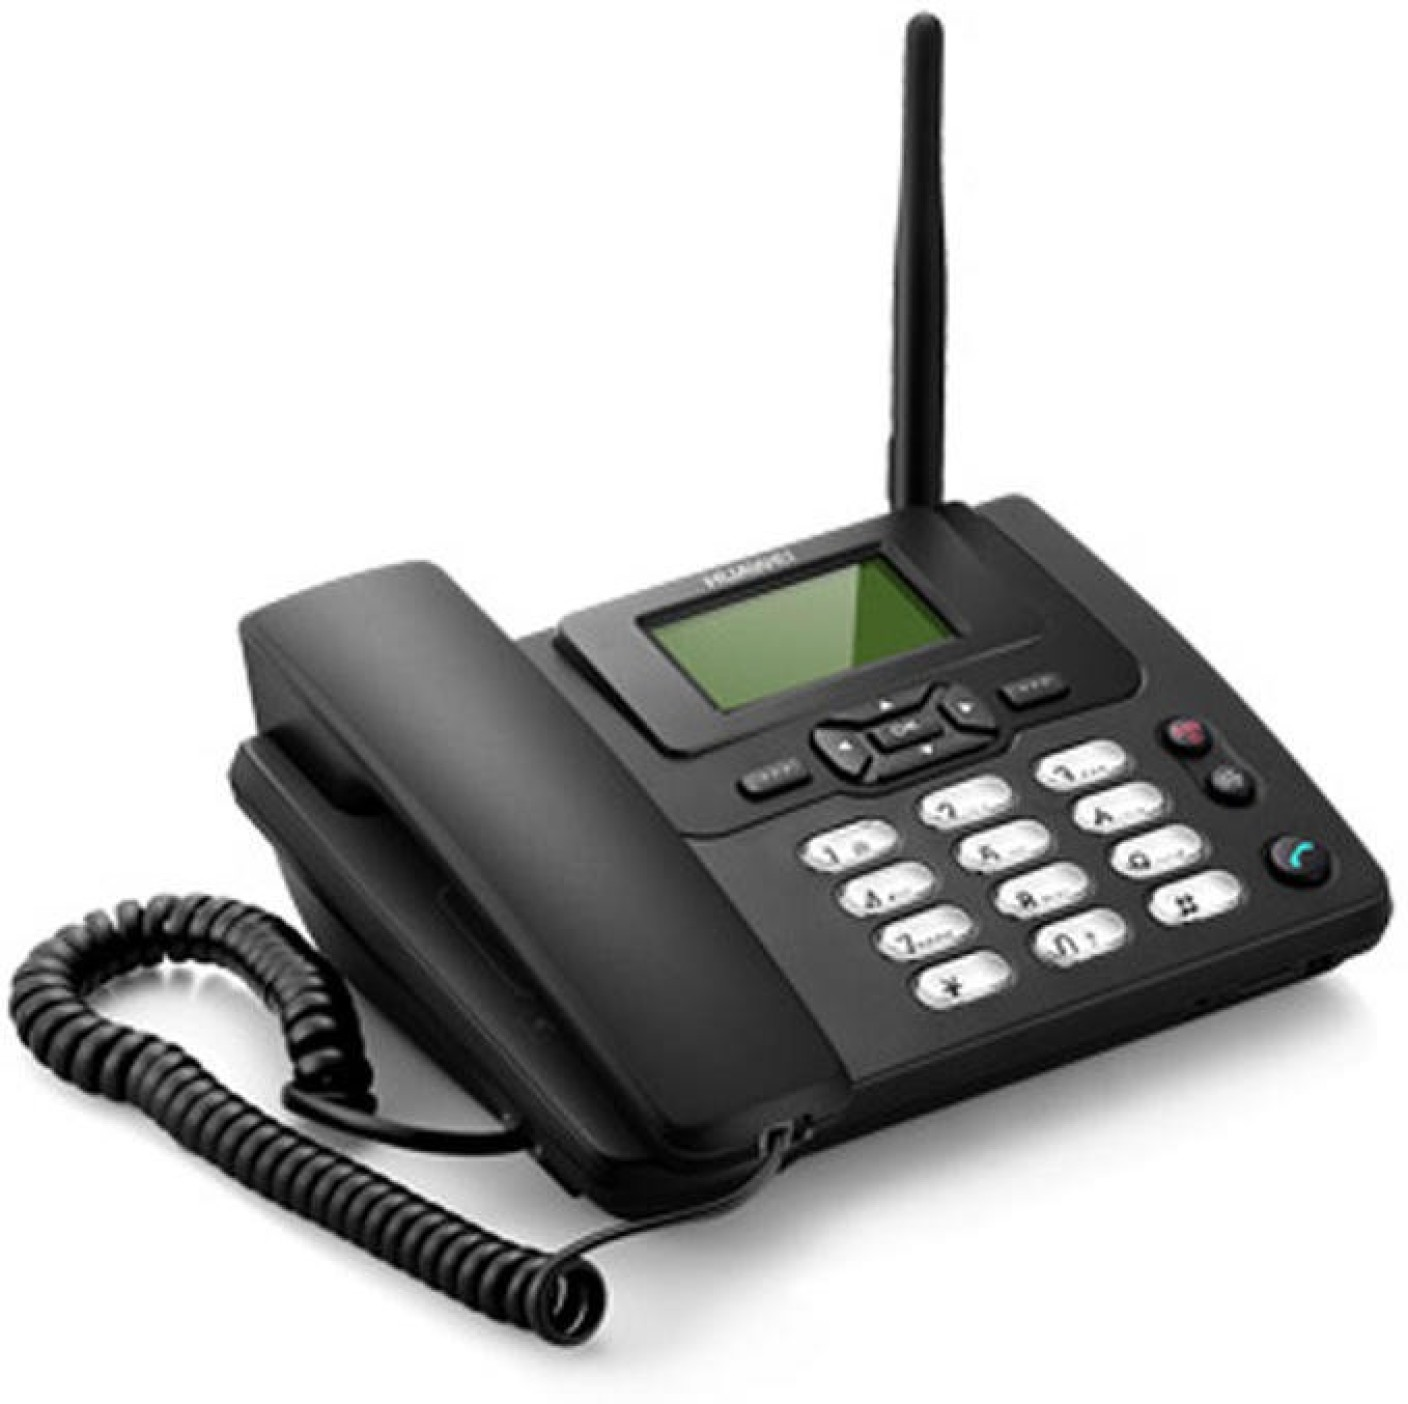 Huawei f501 gsm wireless landline phone any type of gsm sim cards fwp - On Offer